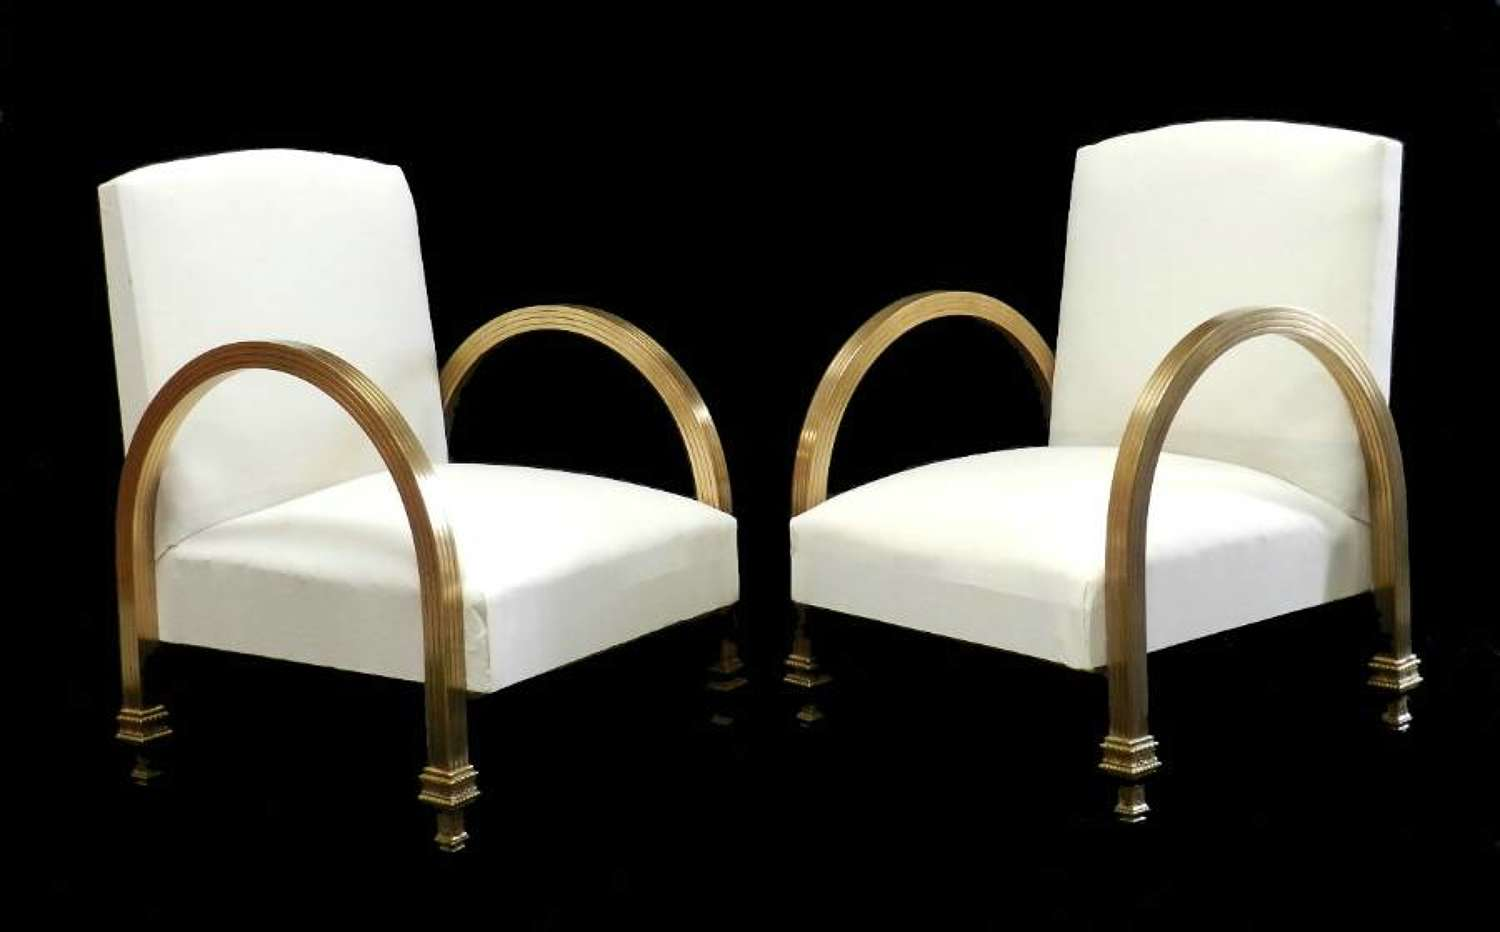 Unusual Art Deco Pair of Armchairs Brass newly upholstered ready for top covers